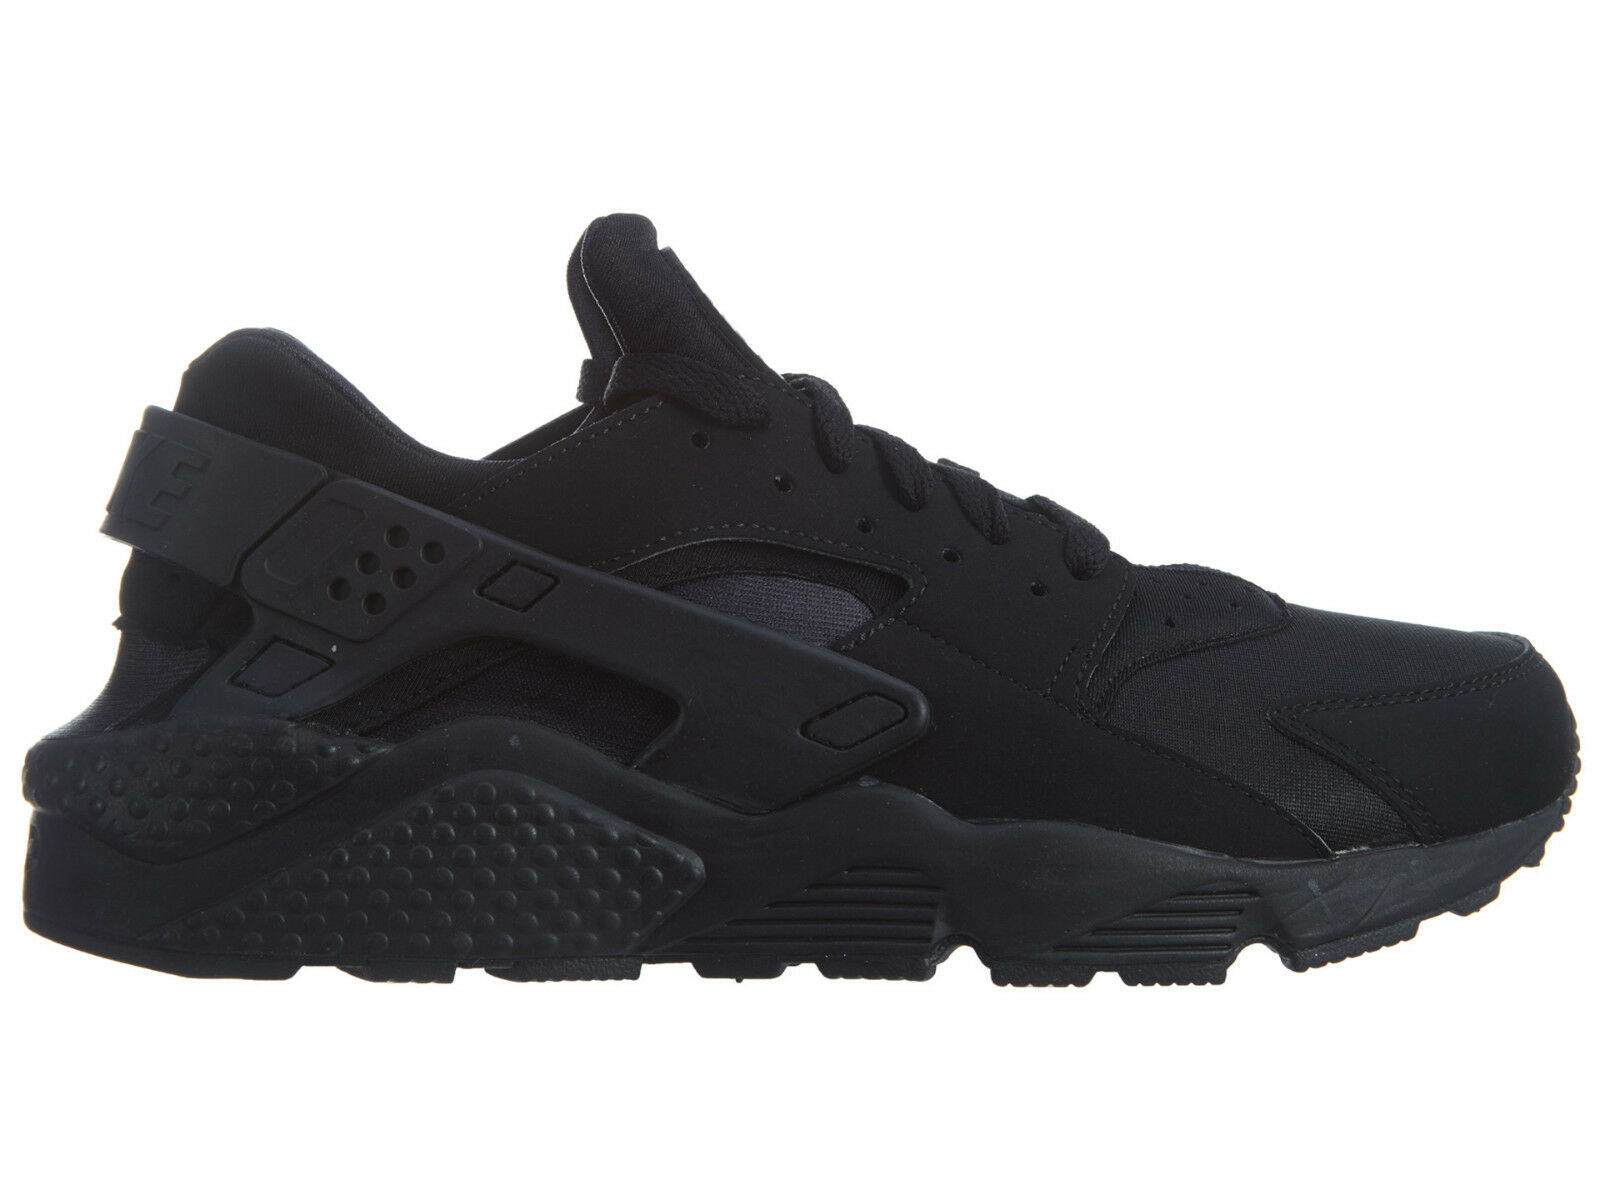 Nike Air Huarache Mens 318429-003 Black Textile Athletic Running shoes Size 10.5